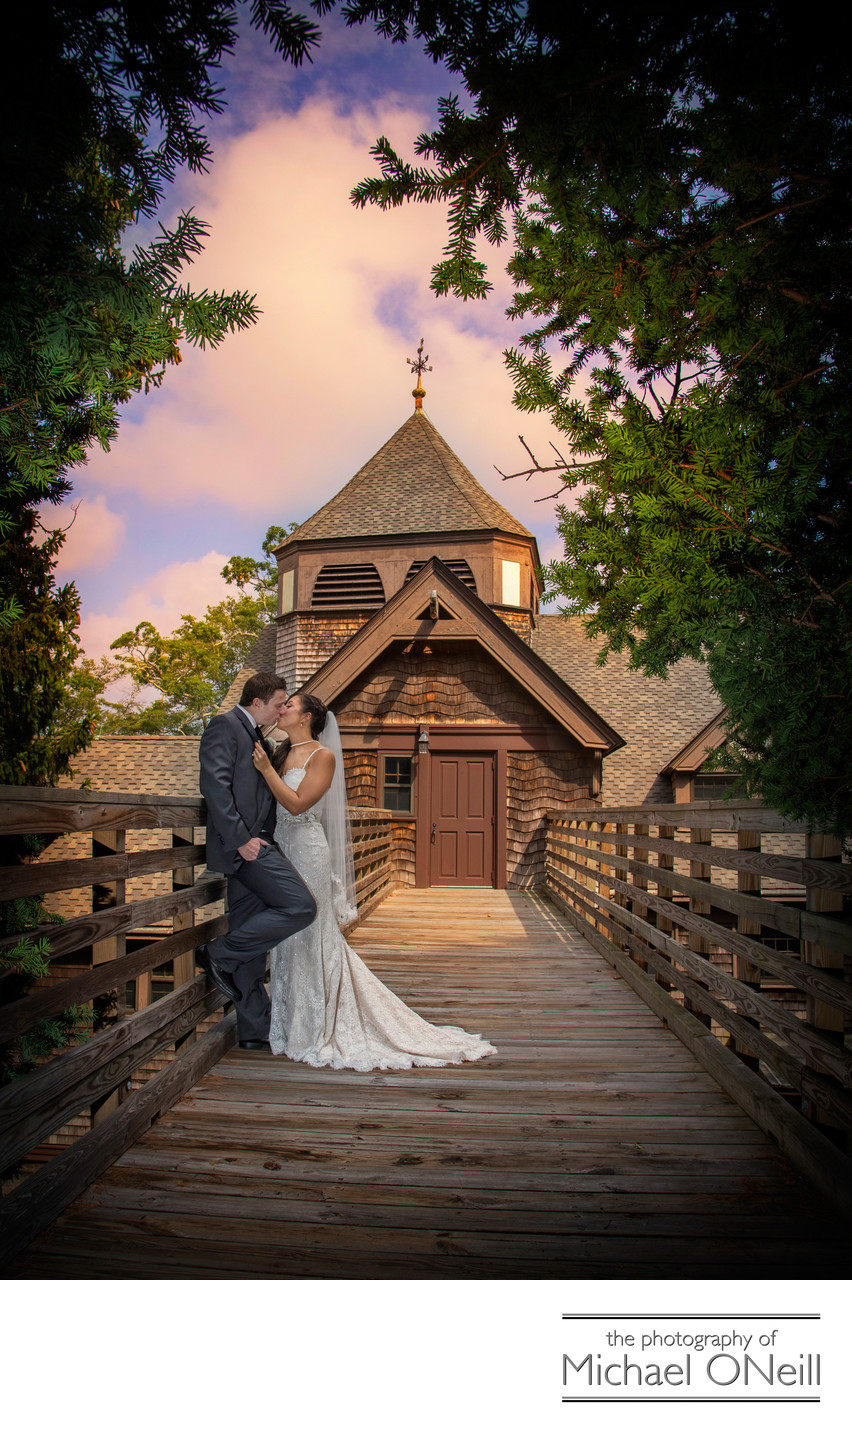 Where to go on Long Island for Amazing Wedding Photos